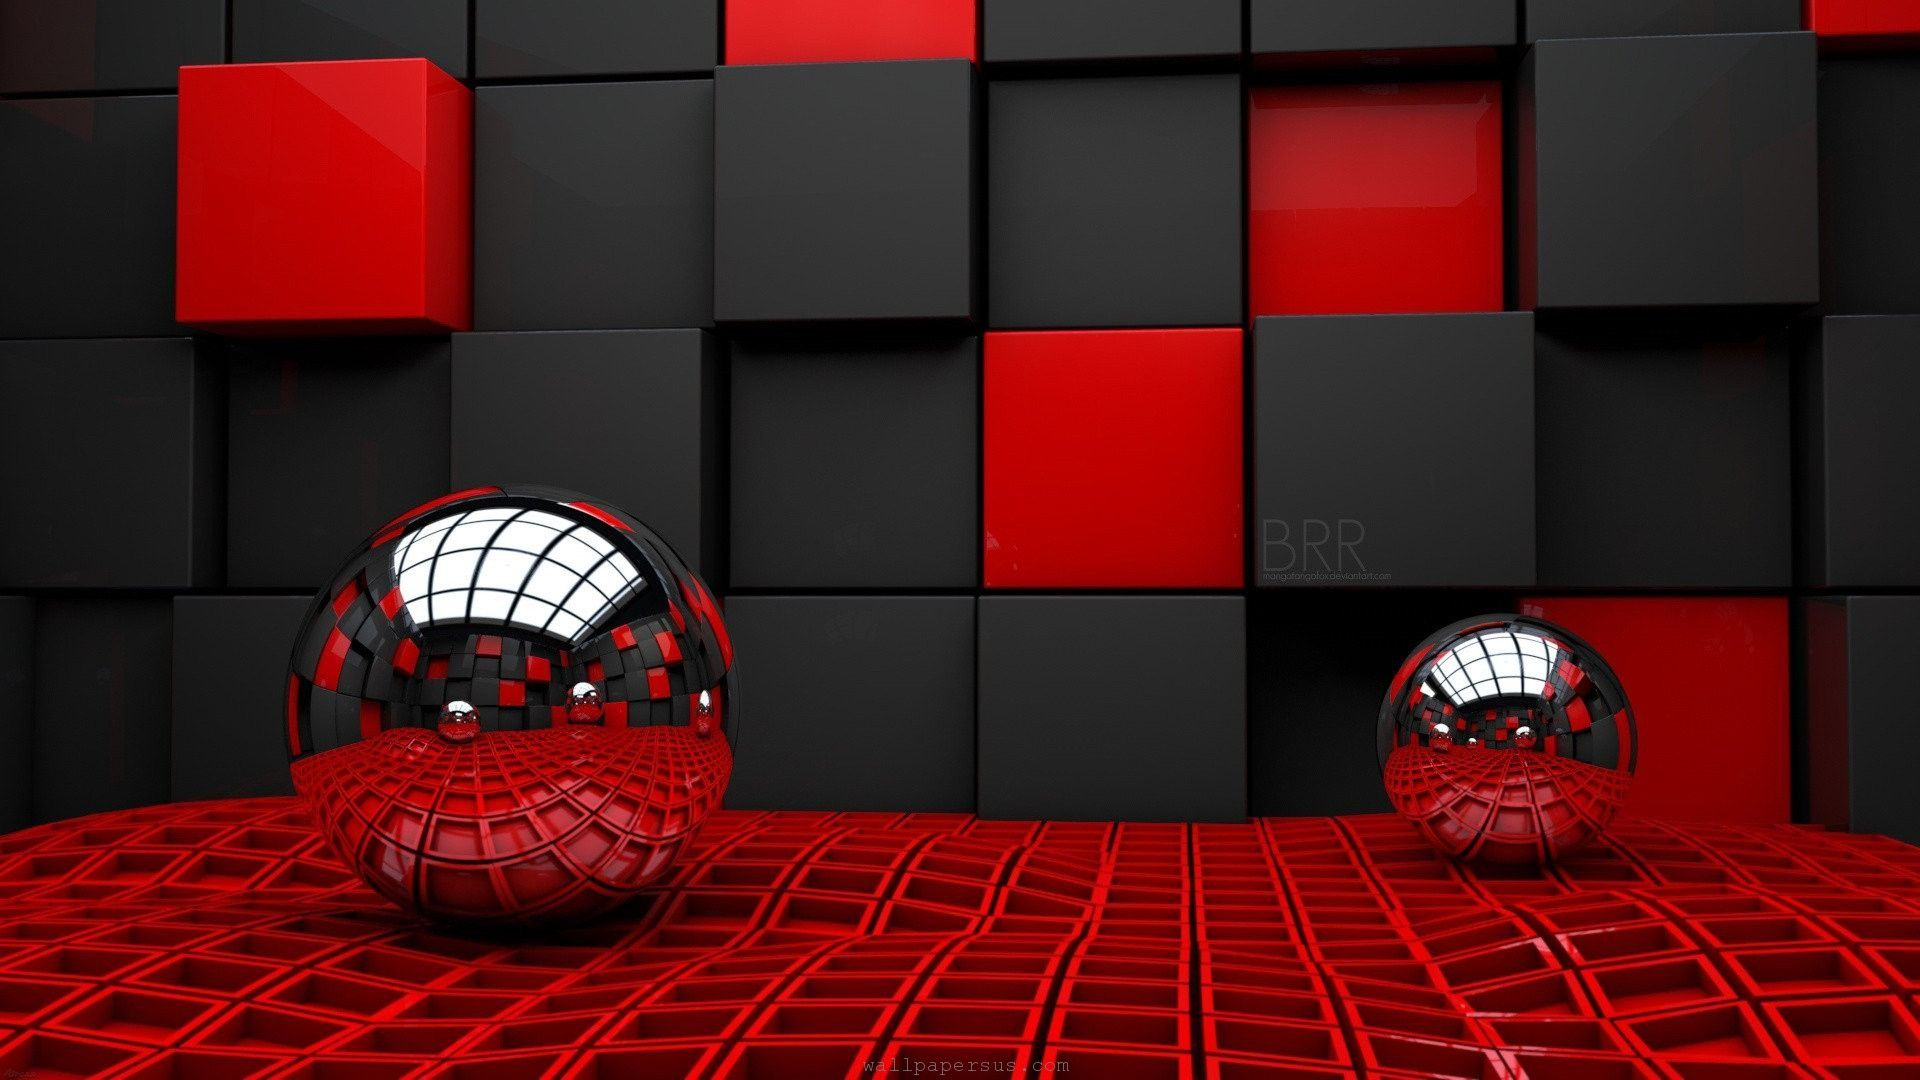 Hd wallpaper red and black - Nothing Found For 3d Red And Black Background Images Hd Wallpapers Places To Visit Pinterest Wallpaper